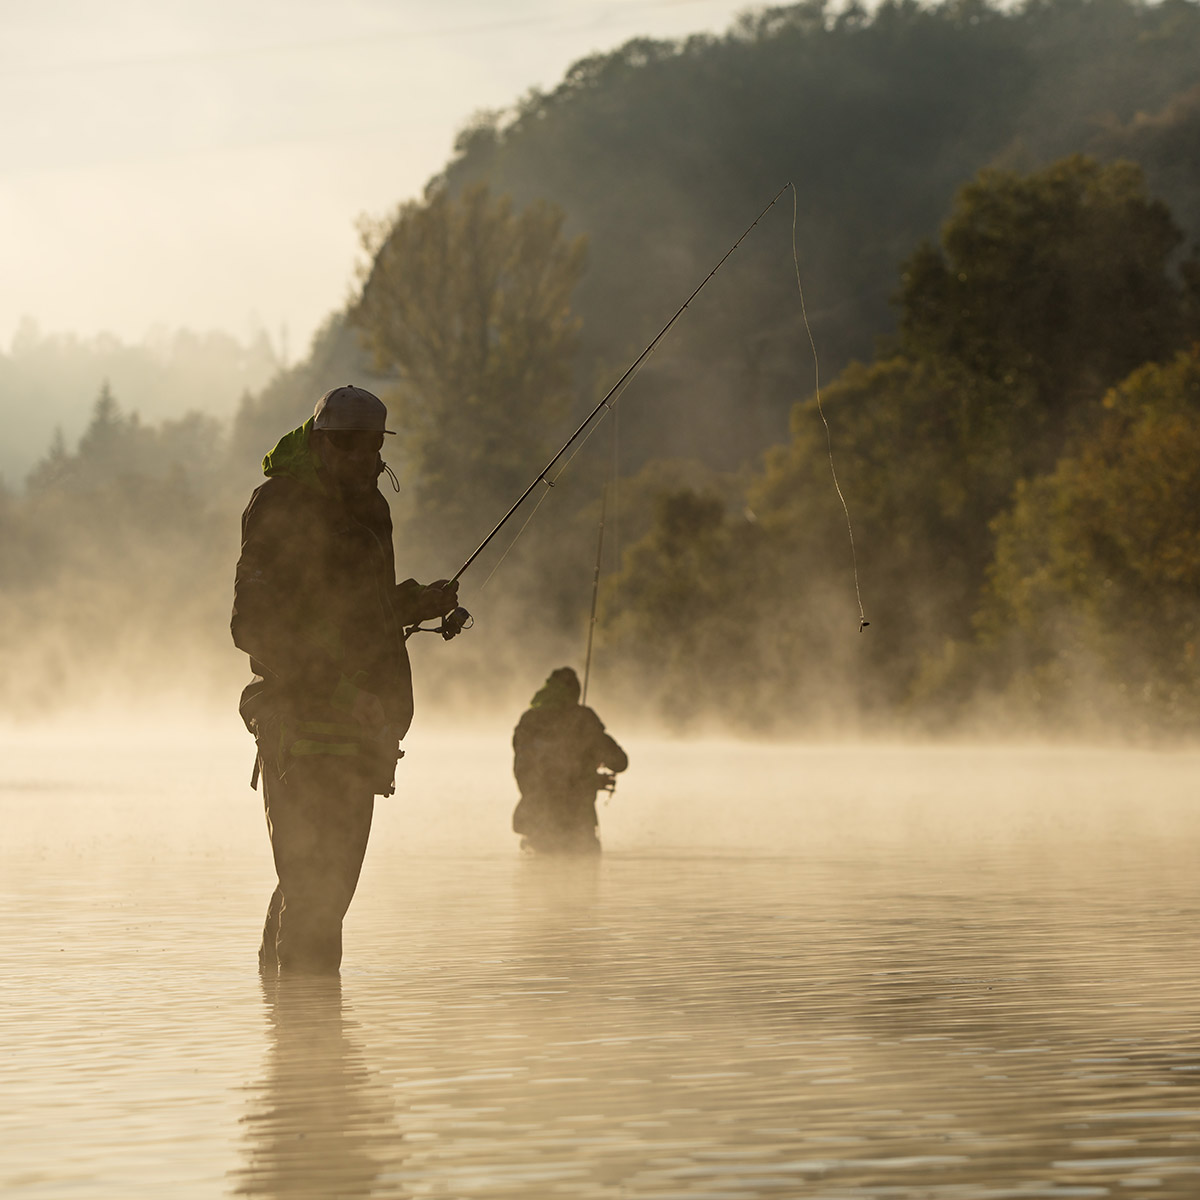 Men Fishing in the Smoky Mountains River